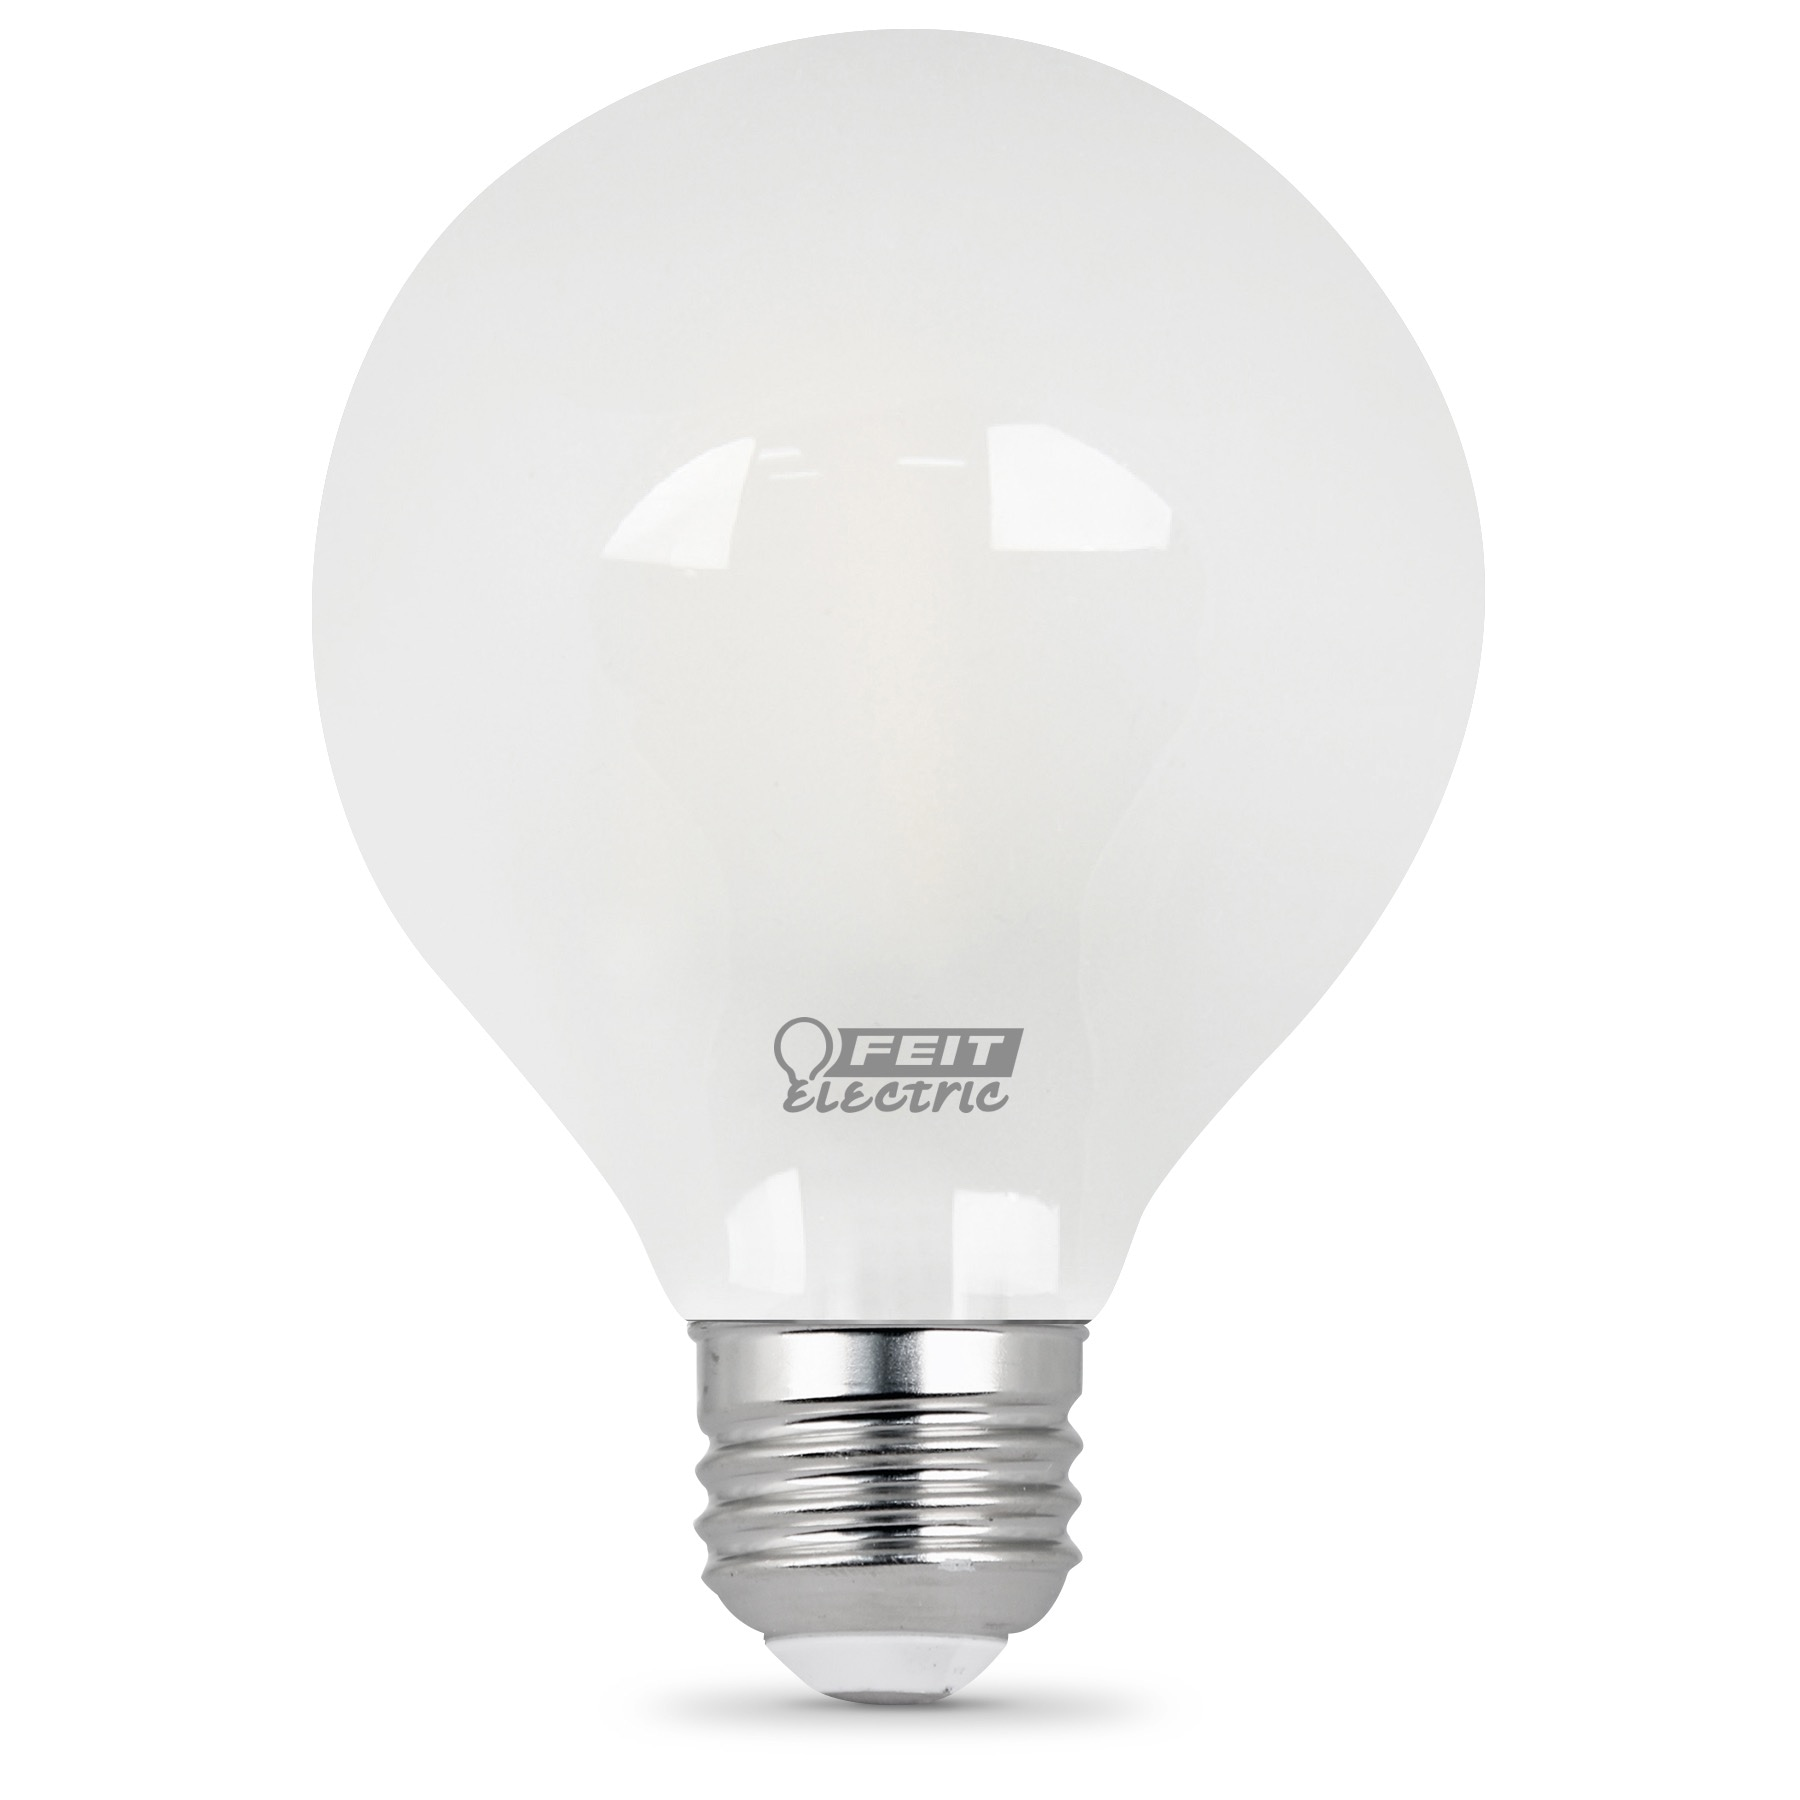 Feit Electric 40w Equivalent Daylight G25 Dimmable Clear: 300 Lumen 5000K Dimmable LED